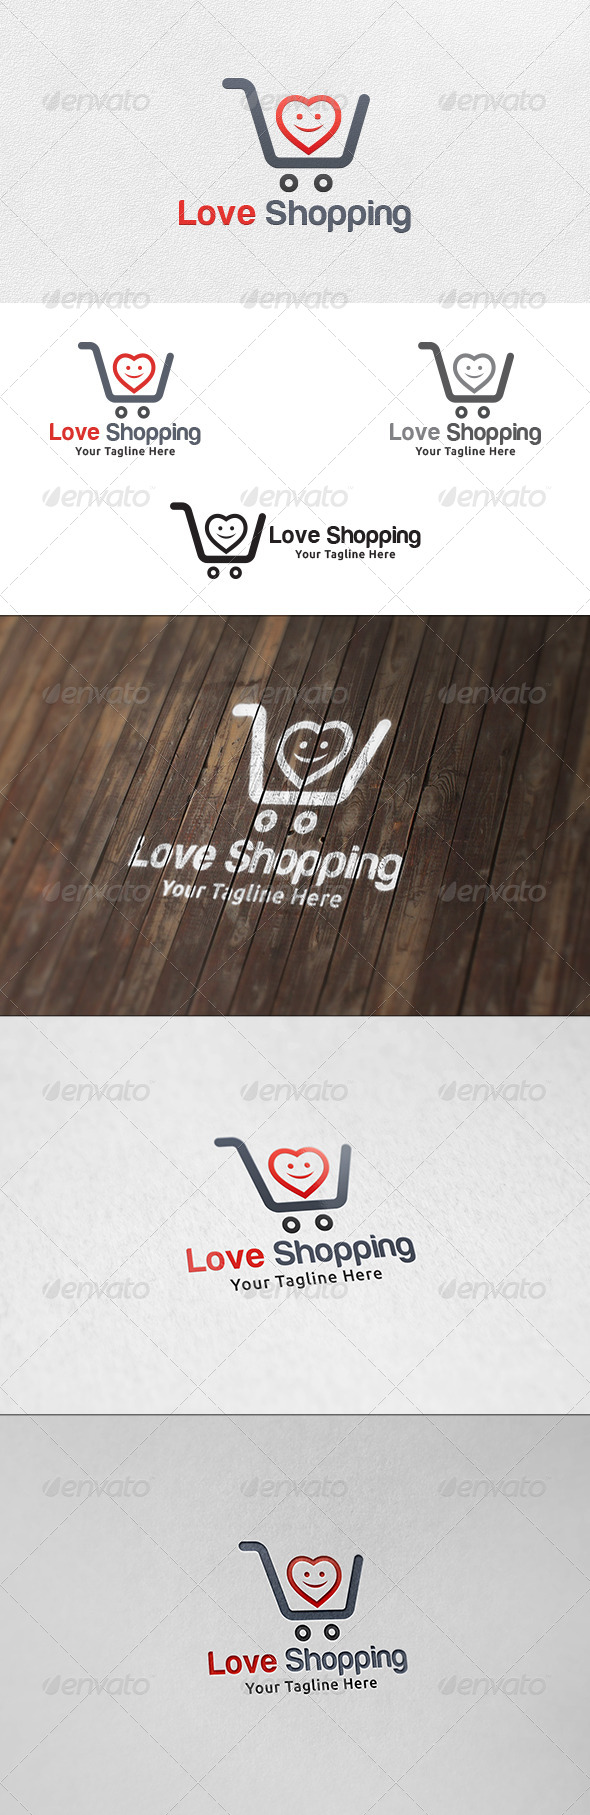 Love Shopping - Logo Template - Symbols Logo Templates